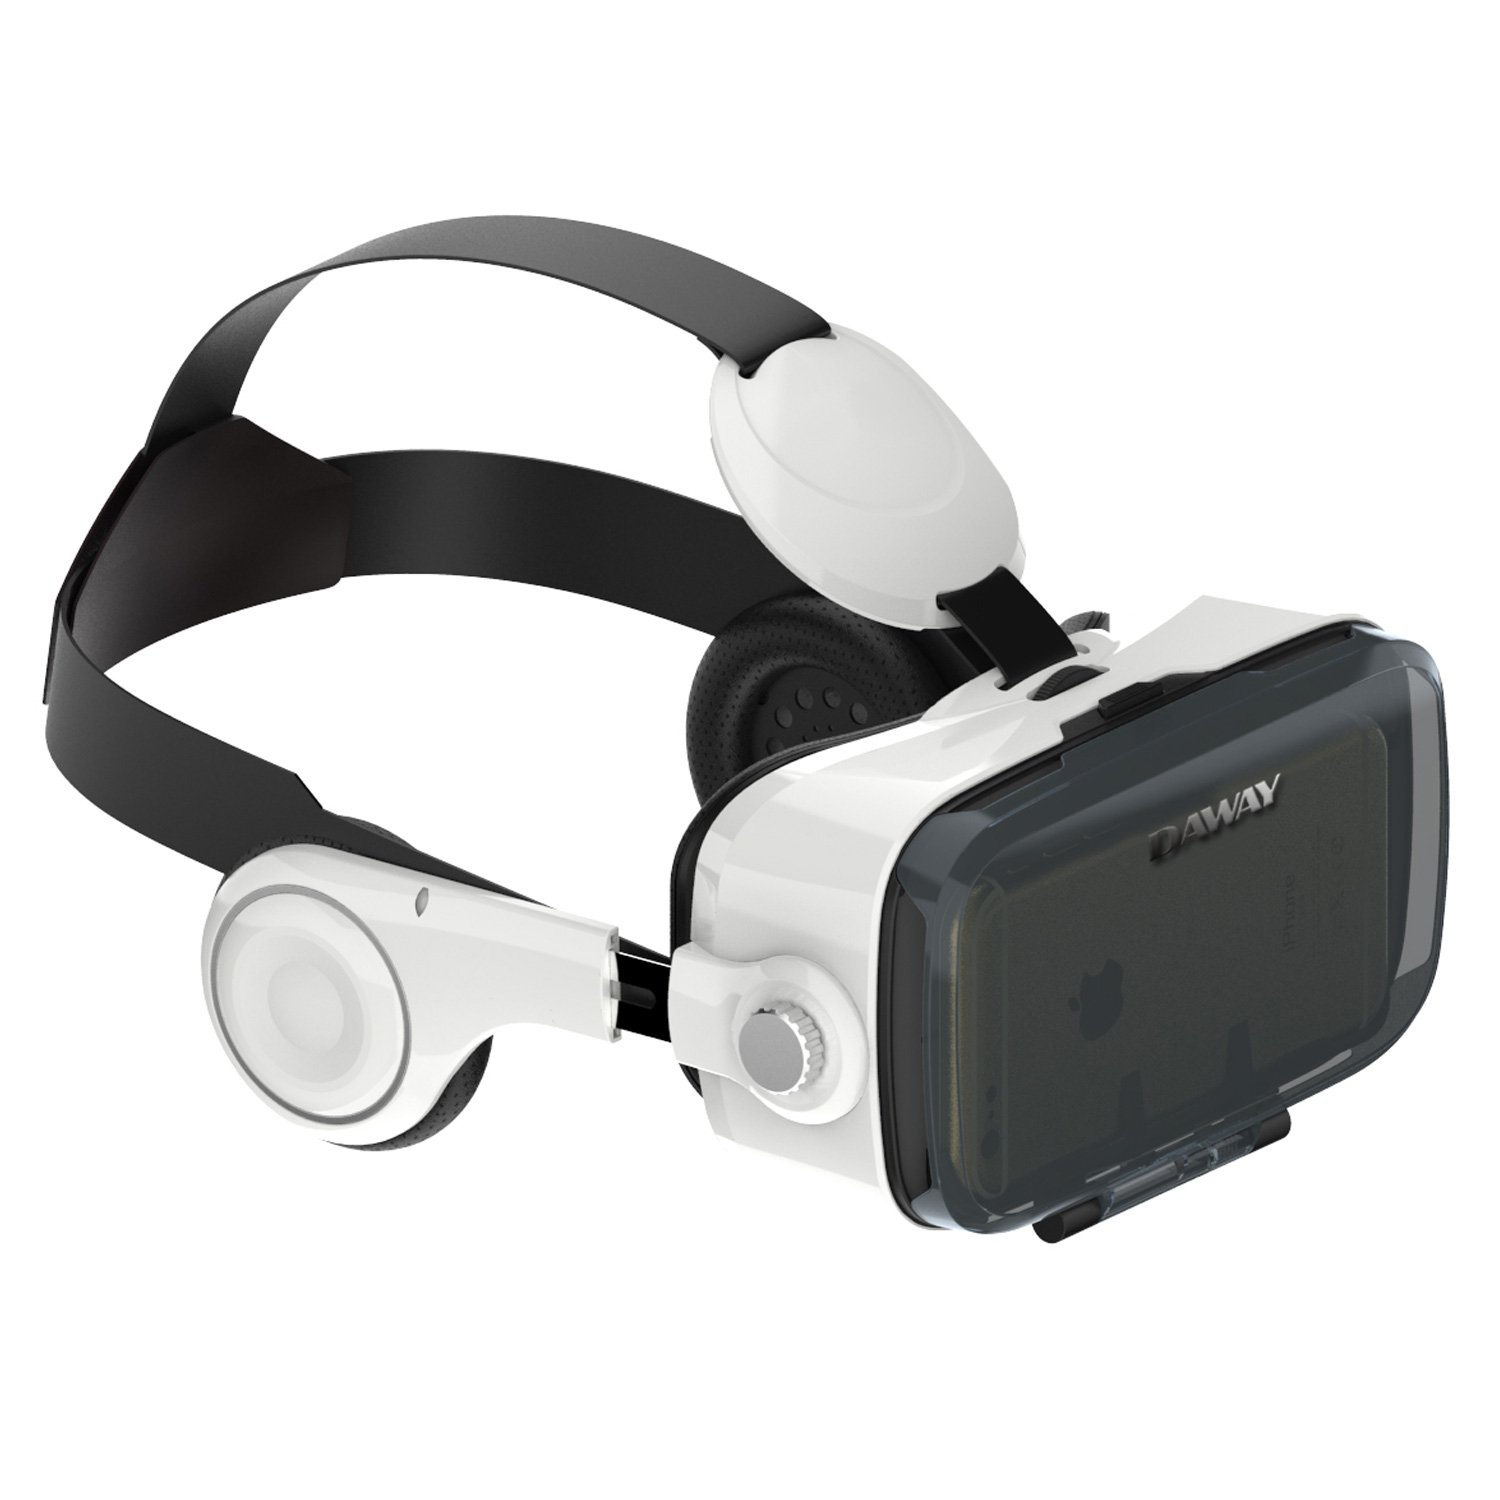 VR Goggles with Stereo Headset - DAWAY 360VR Virtual Reality Goggles for 3D Movies & Games Compatible with 4.0-6.2 Inches Apple iPhone, Samsung More Smartphones, 120° FOV by DAWAY